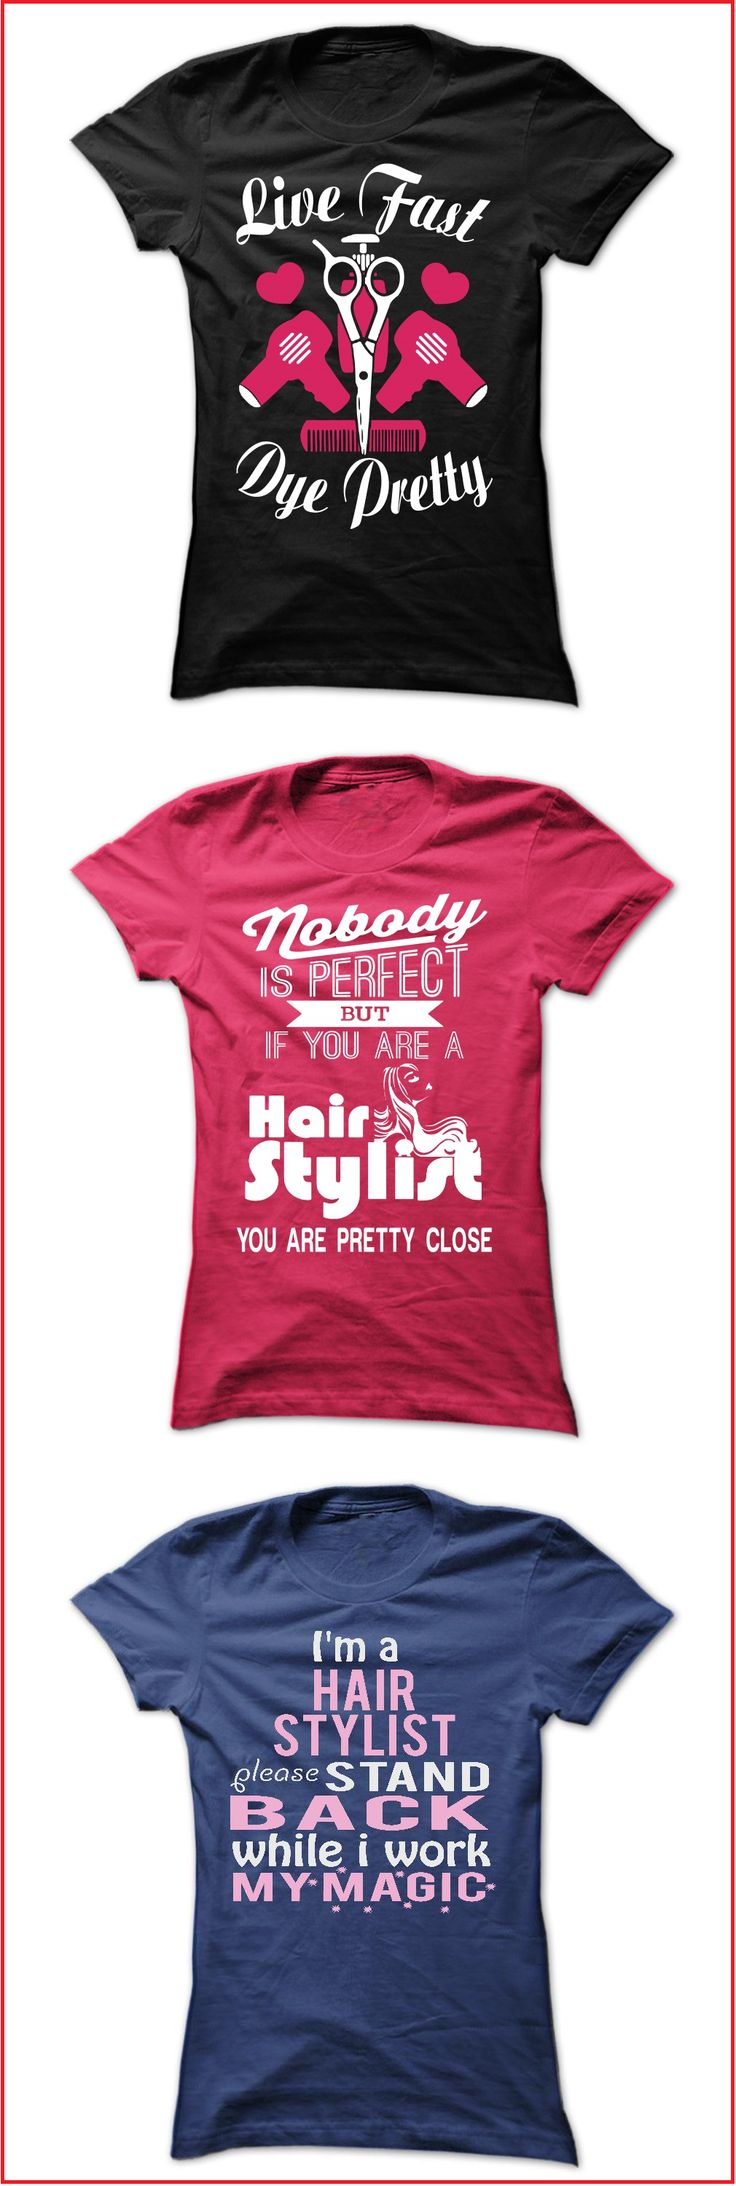 """These funny t-shirts for hair stylists are to """"dye"""" for. (Pardon the """"bun."""")  Available in a variety of colors and styles for yourself or your favorite hair dresser. See the full collection here: https://www.sunfrog.com/dmh0226/hair-stylist"""